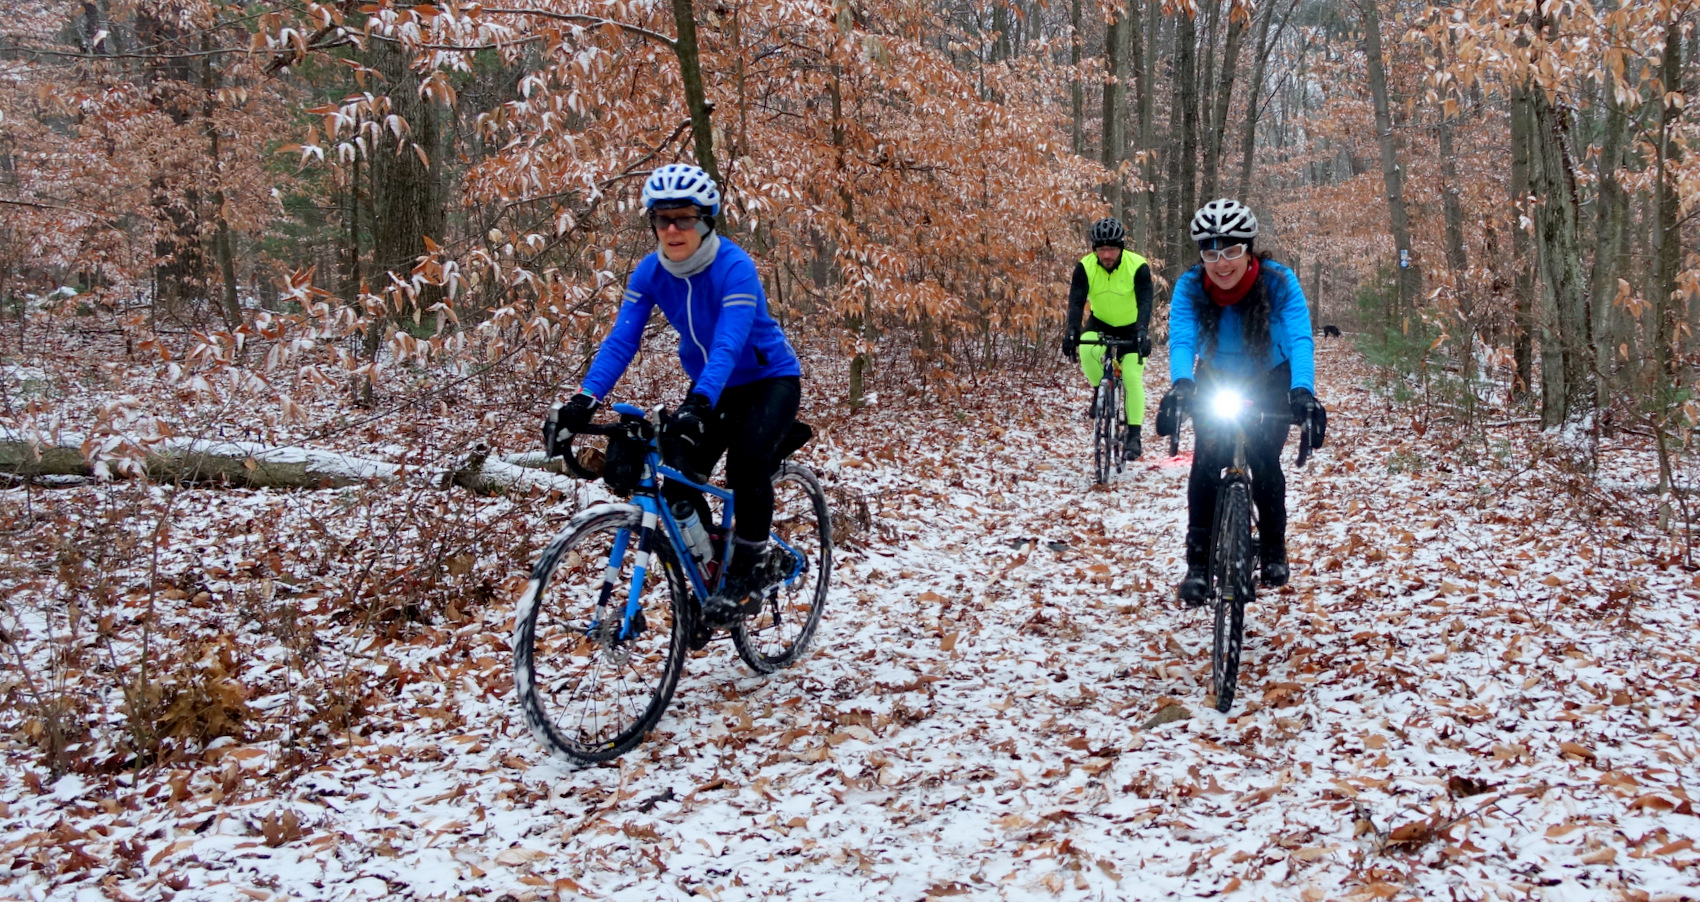 Crunching leaves on the new snow - photo - Rob Vandermark.JPG